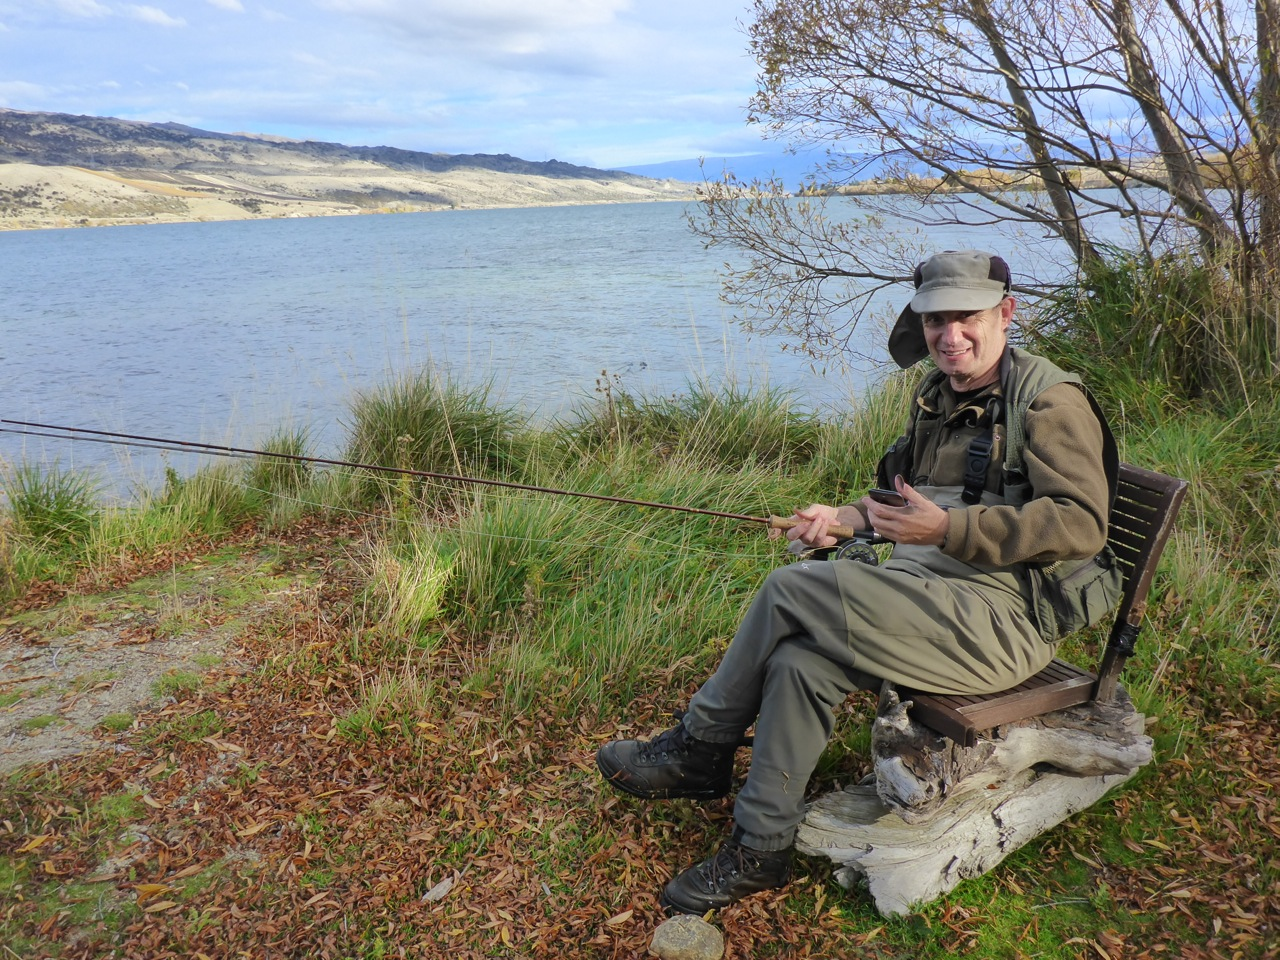 Camo-Guy relaxing on an abandoned chair on Lake Dunstan.